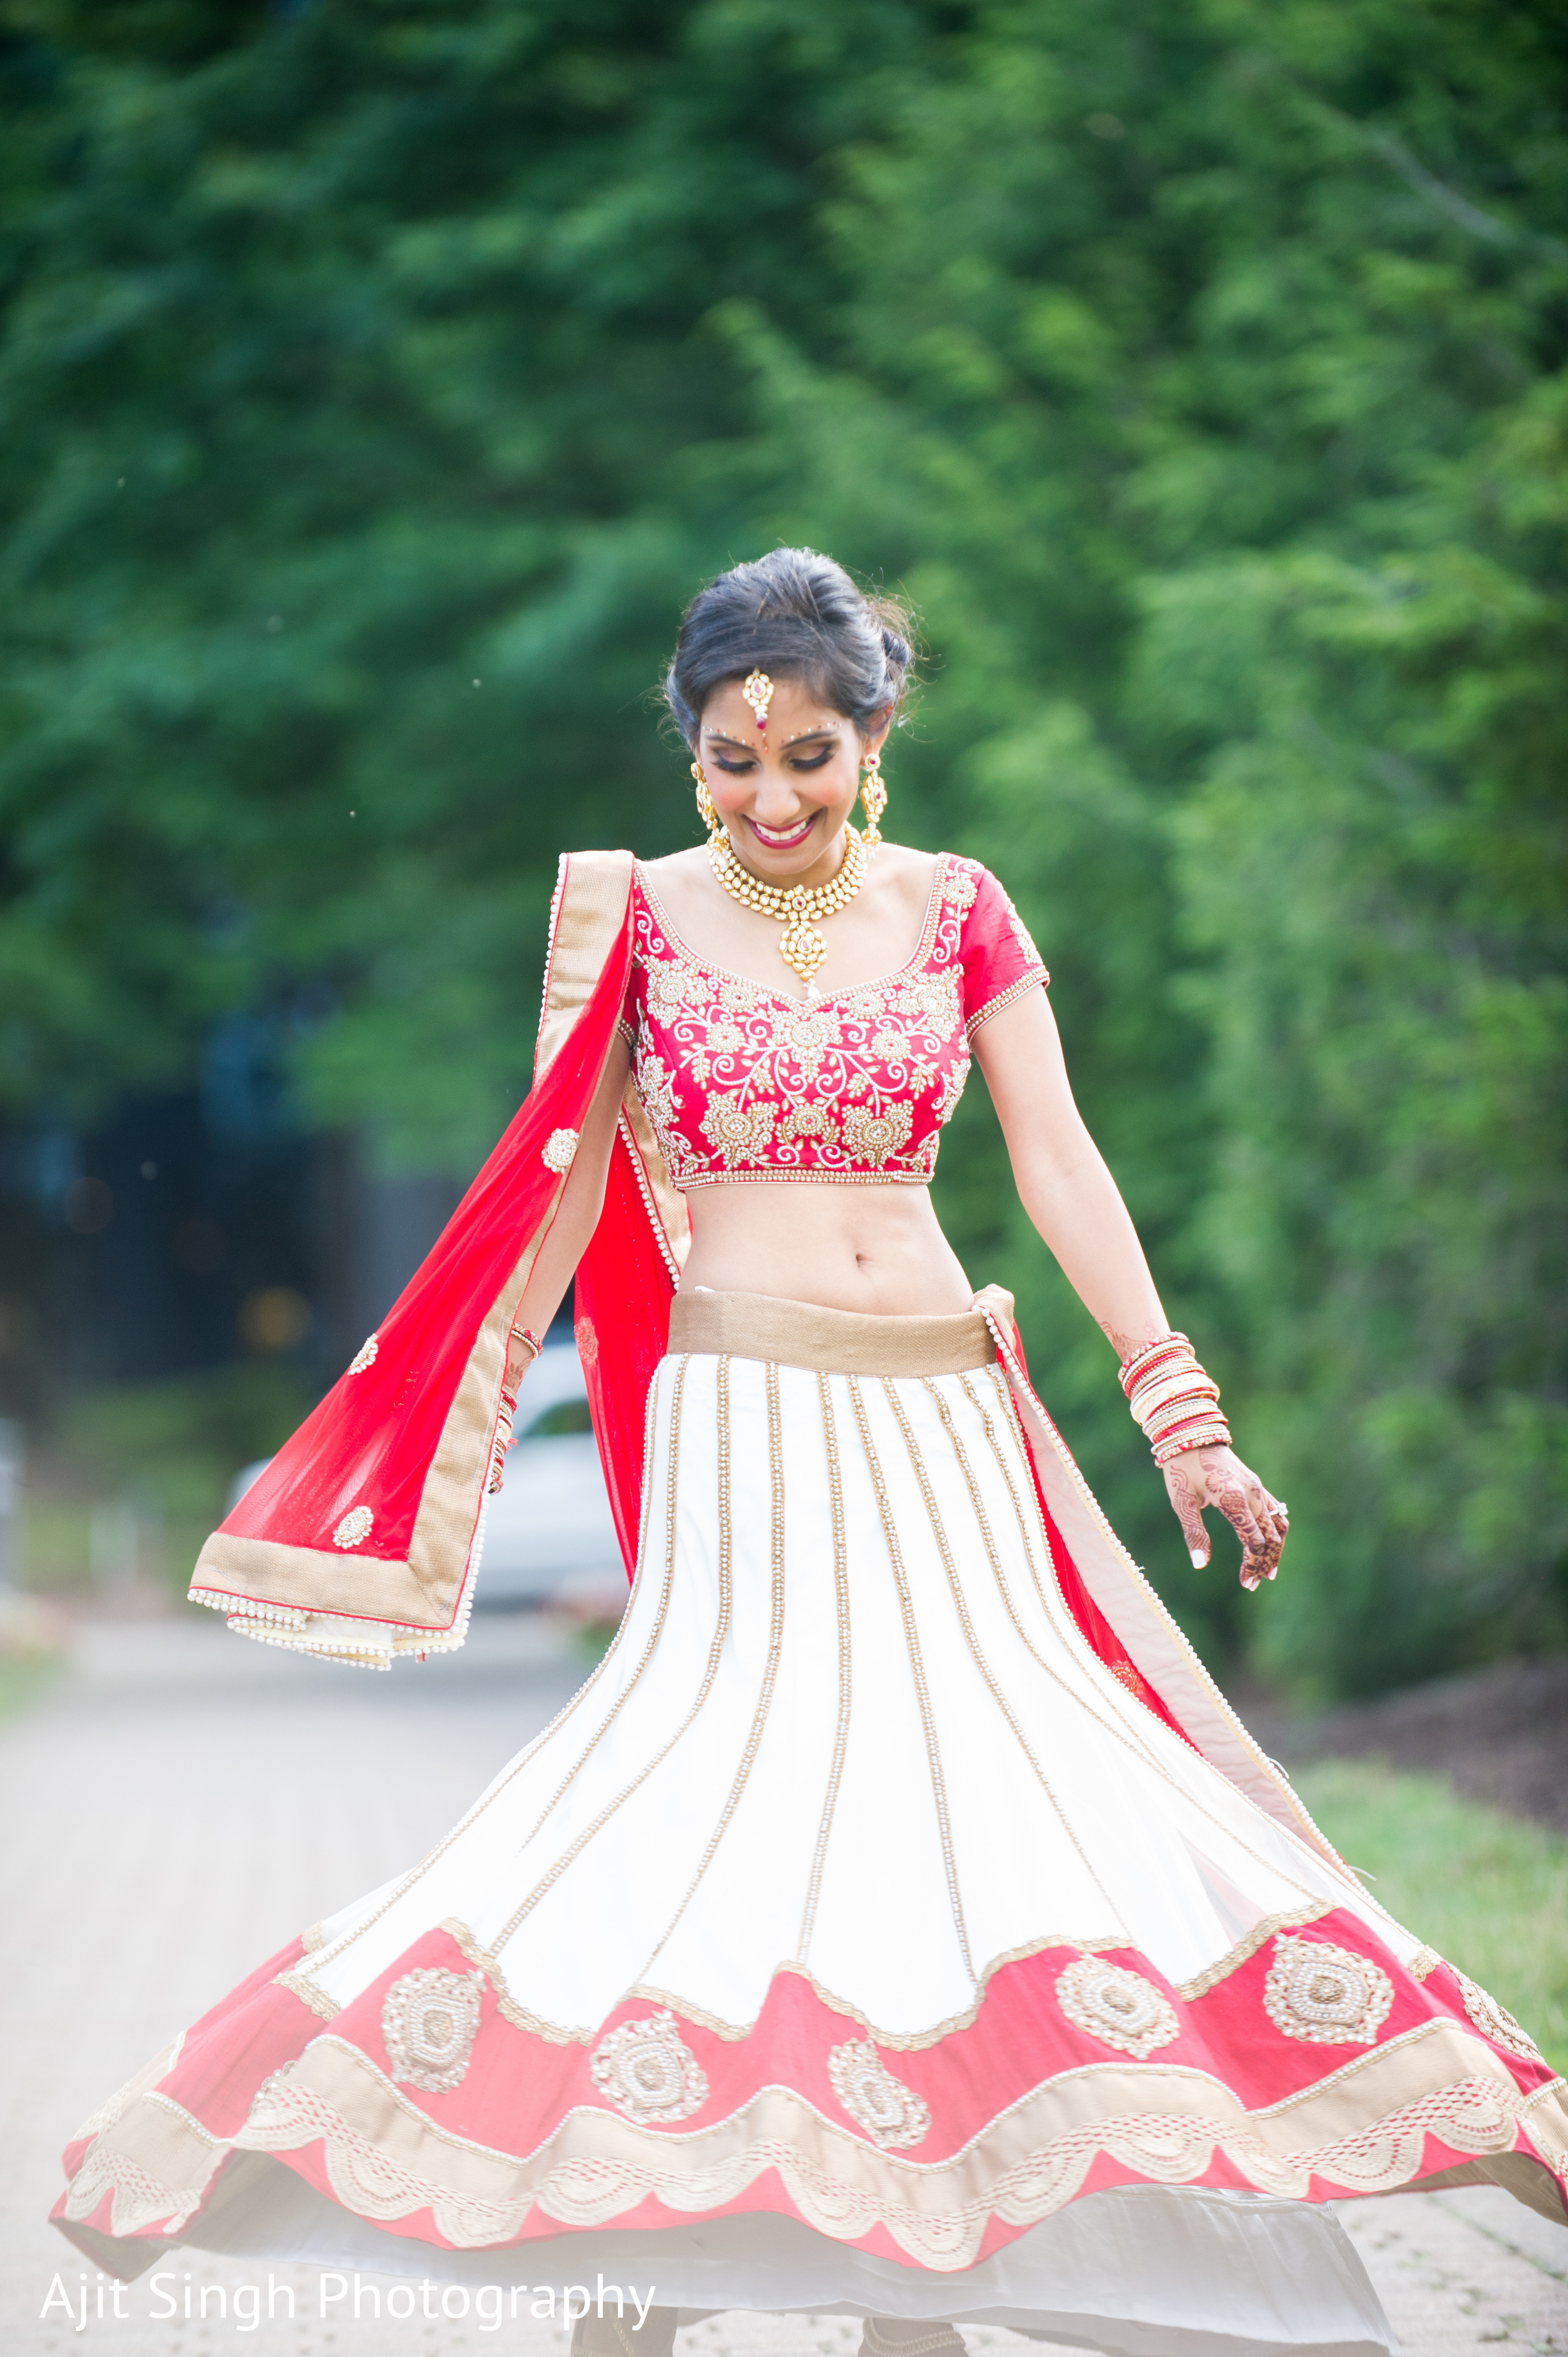 Portraits In Mahwah NJ Indian Wedding By Ajit Singh Photography